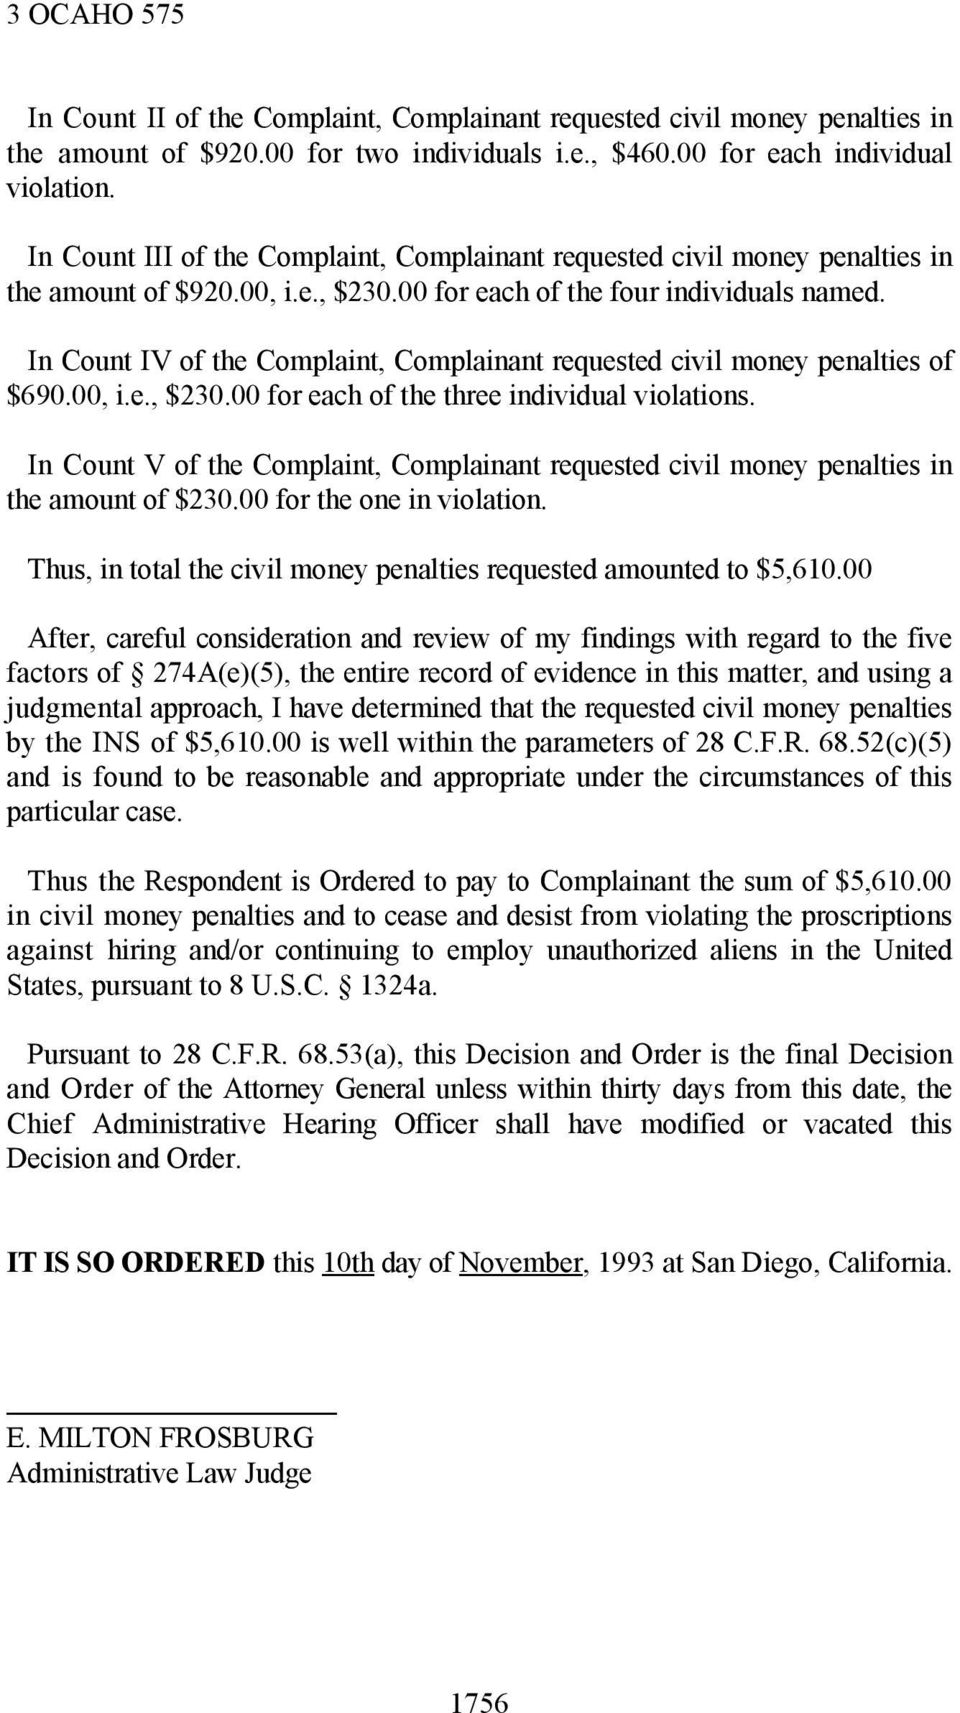 In Count IV of the Complaint, Complainant requested civil money penalties of $690.00, i.e., $230.00 for each of the three individual violations.